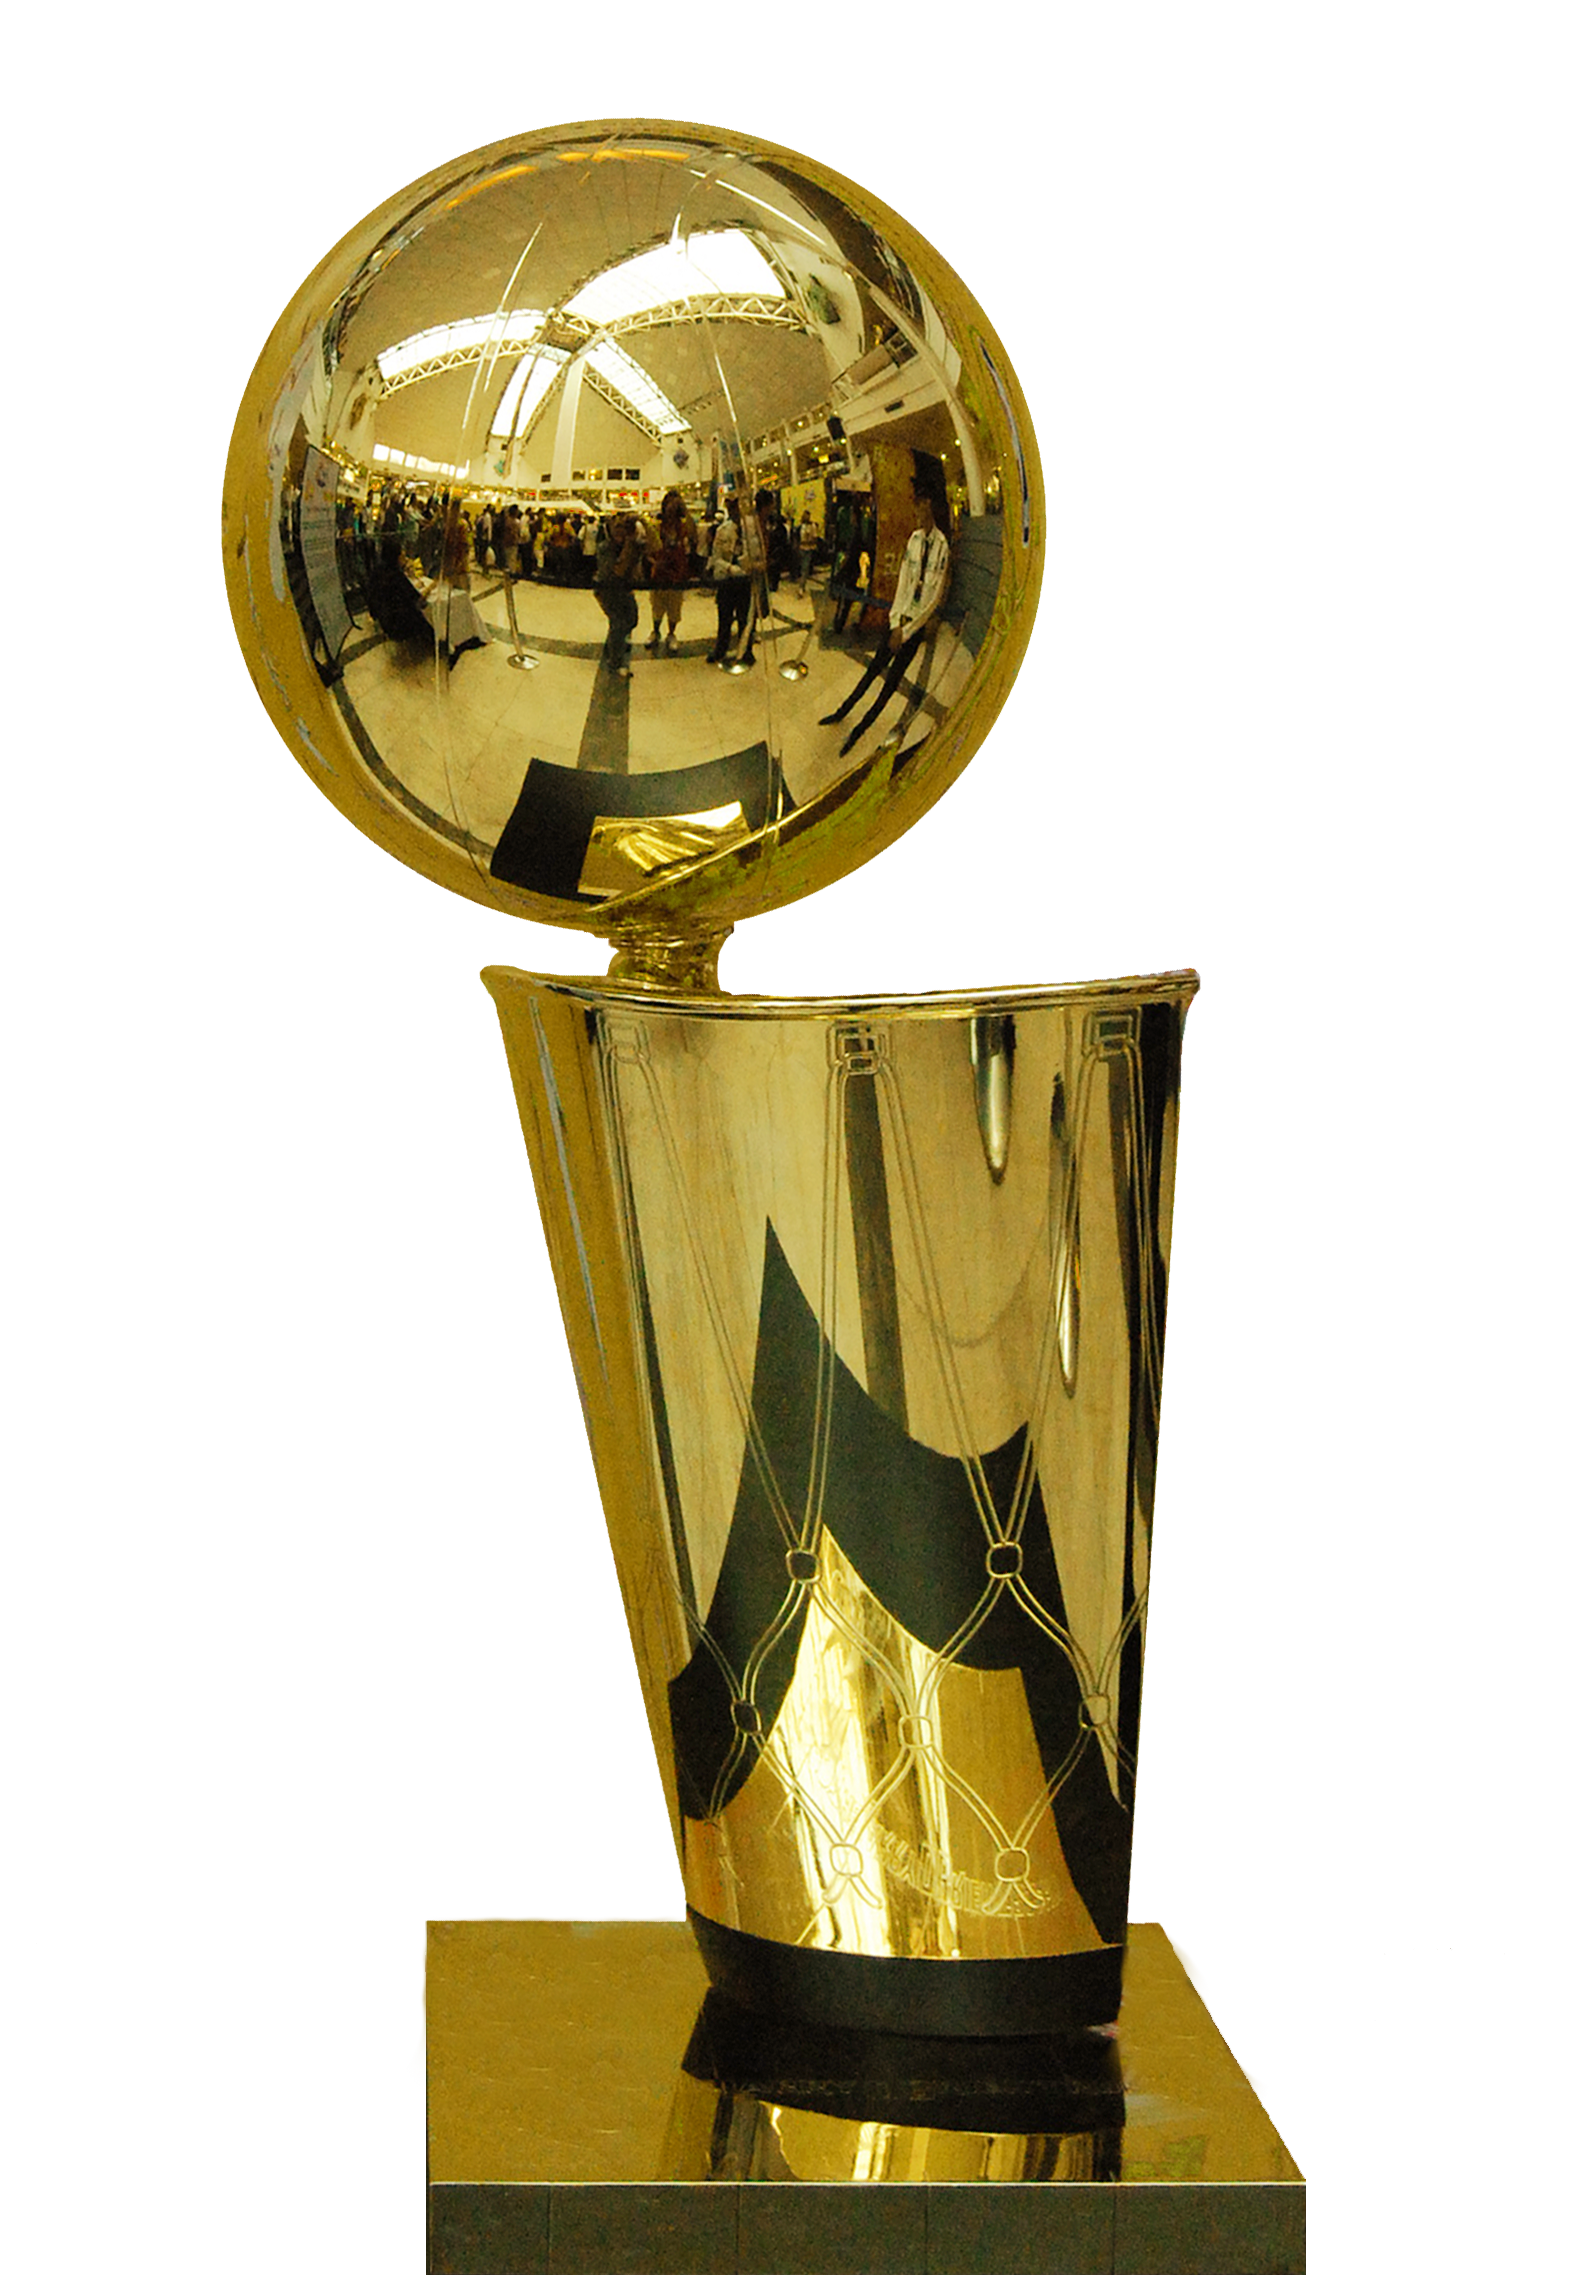 Larry O Brien Nba Championship Trophy Nice Little Piece Of Hardware Photography Gift Certificate Template Photography Gift Certificate Trophy Design